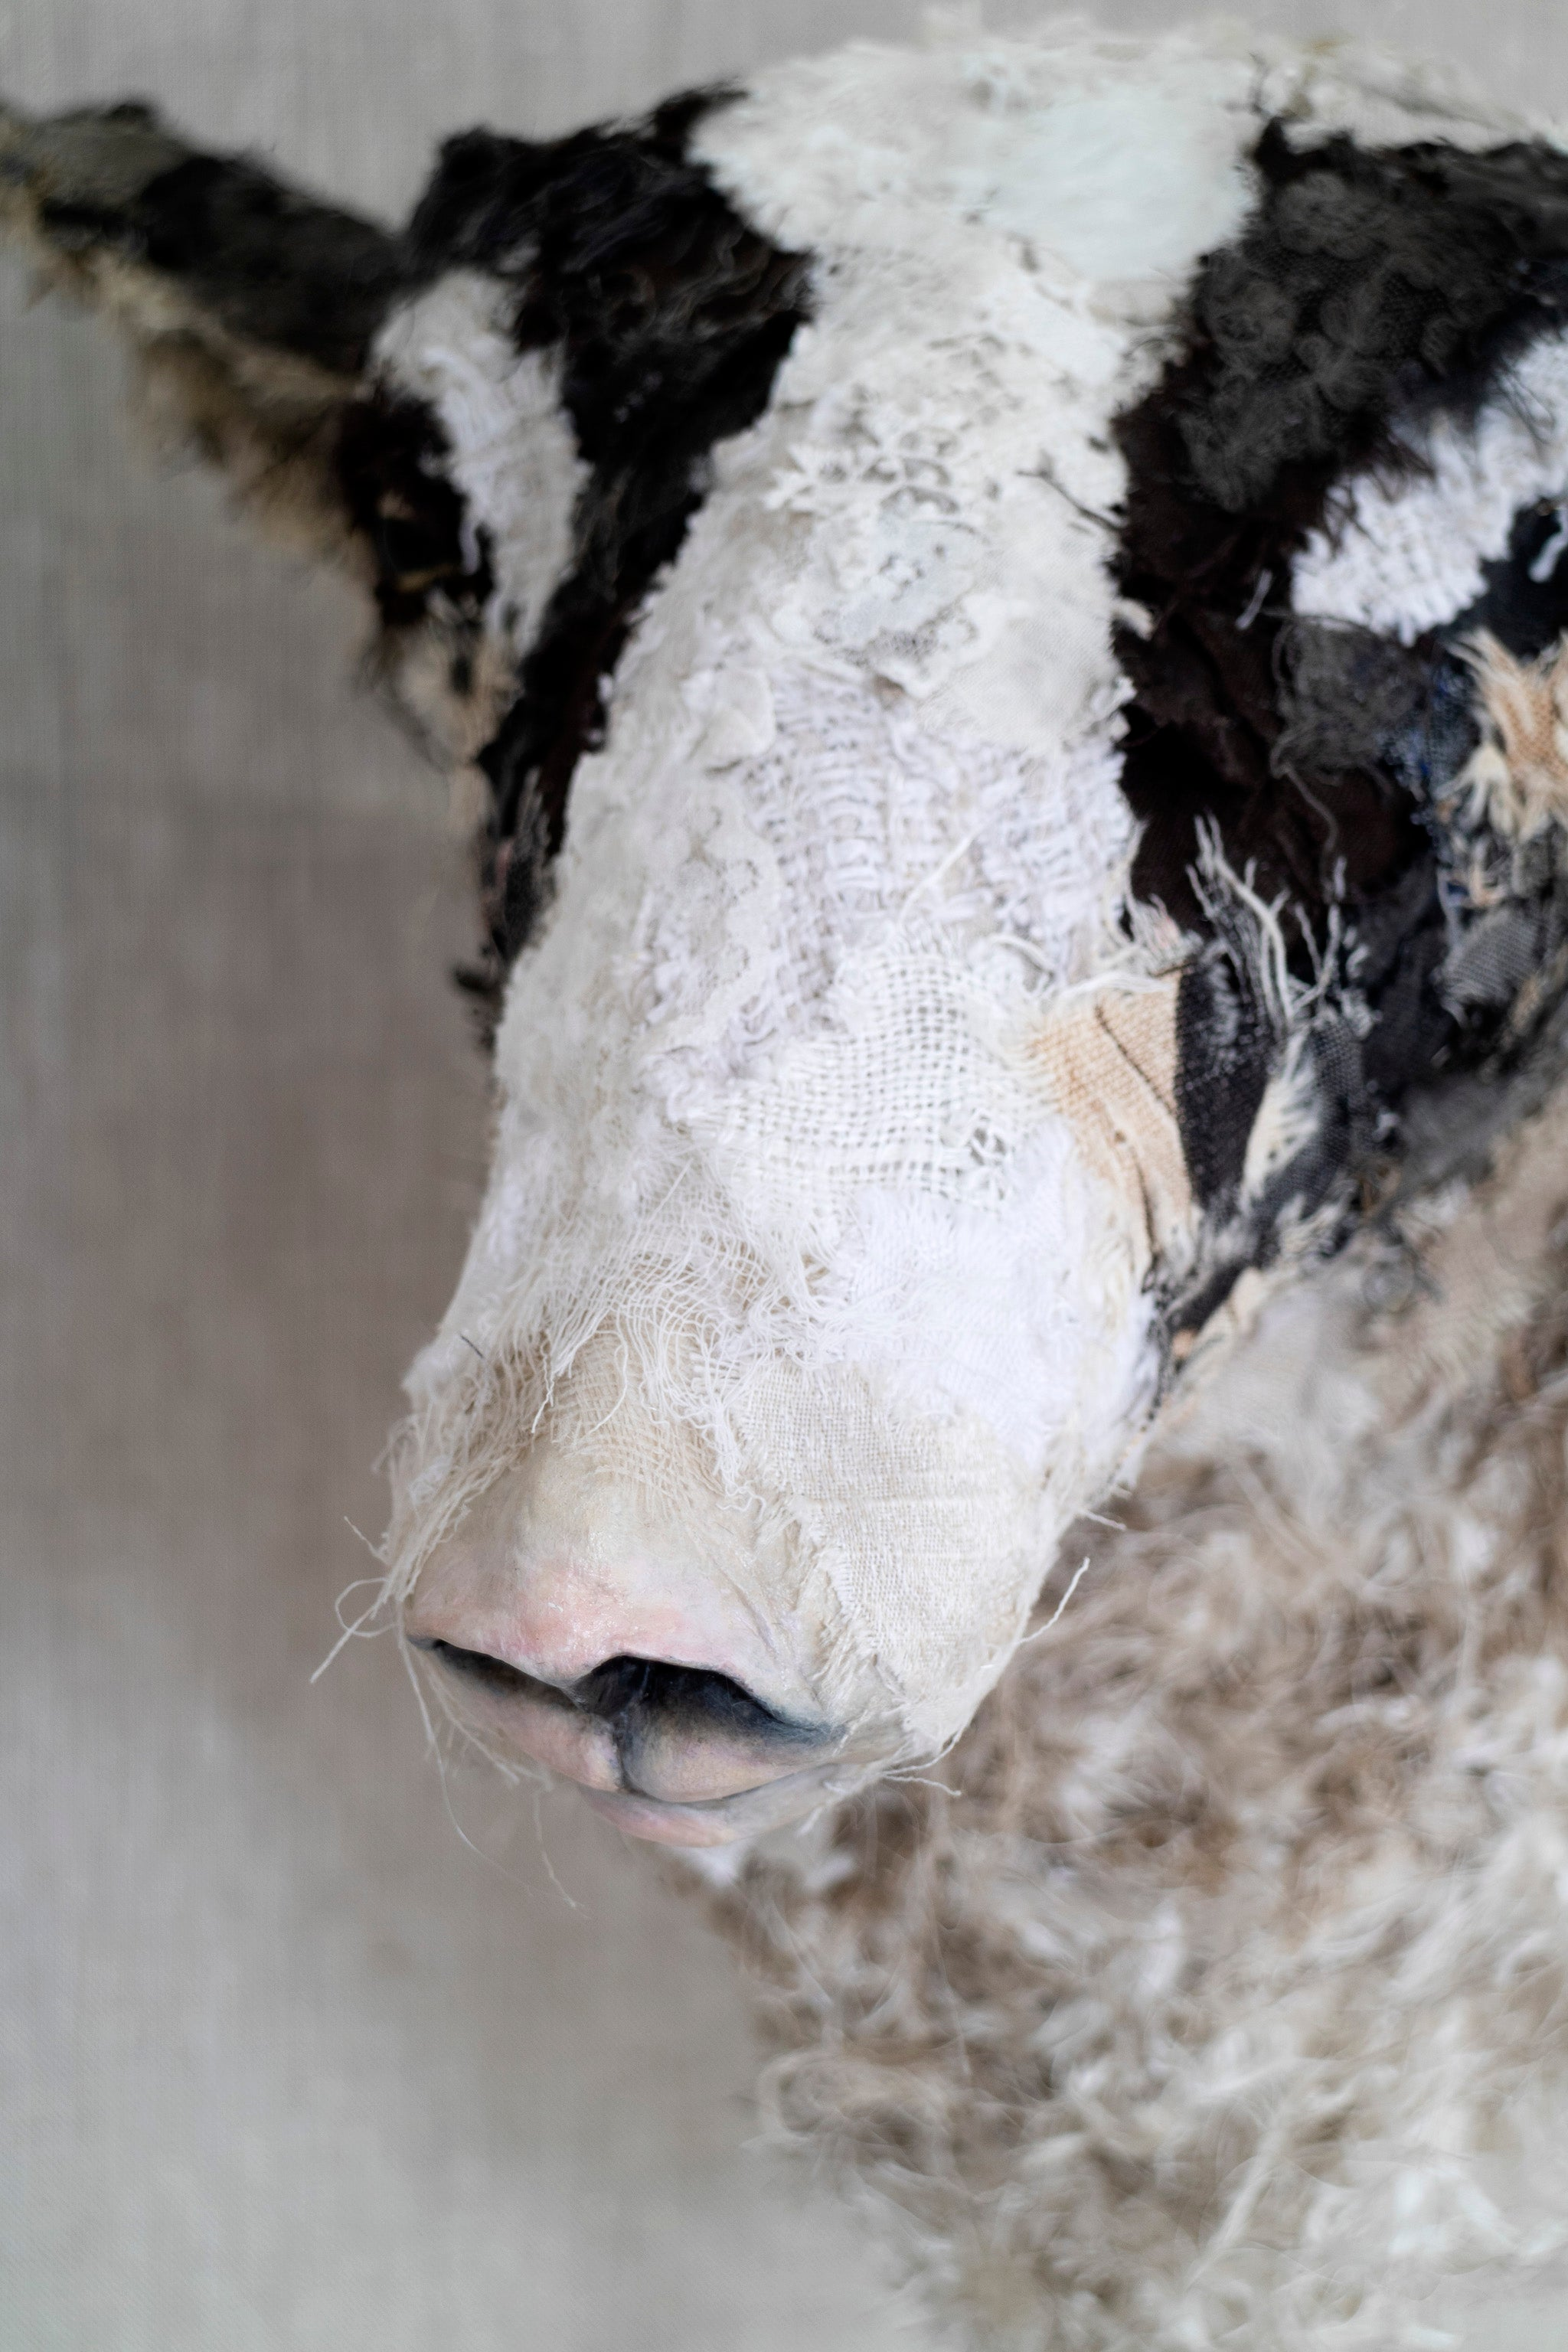 Sheep textile sculpture by Susan Bowers created from vintage and antique textiles